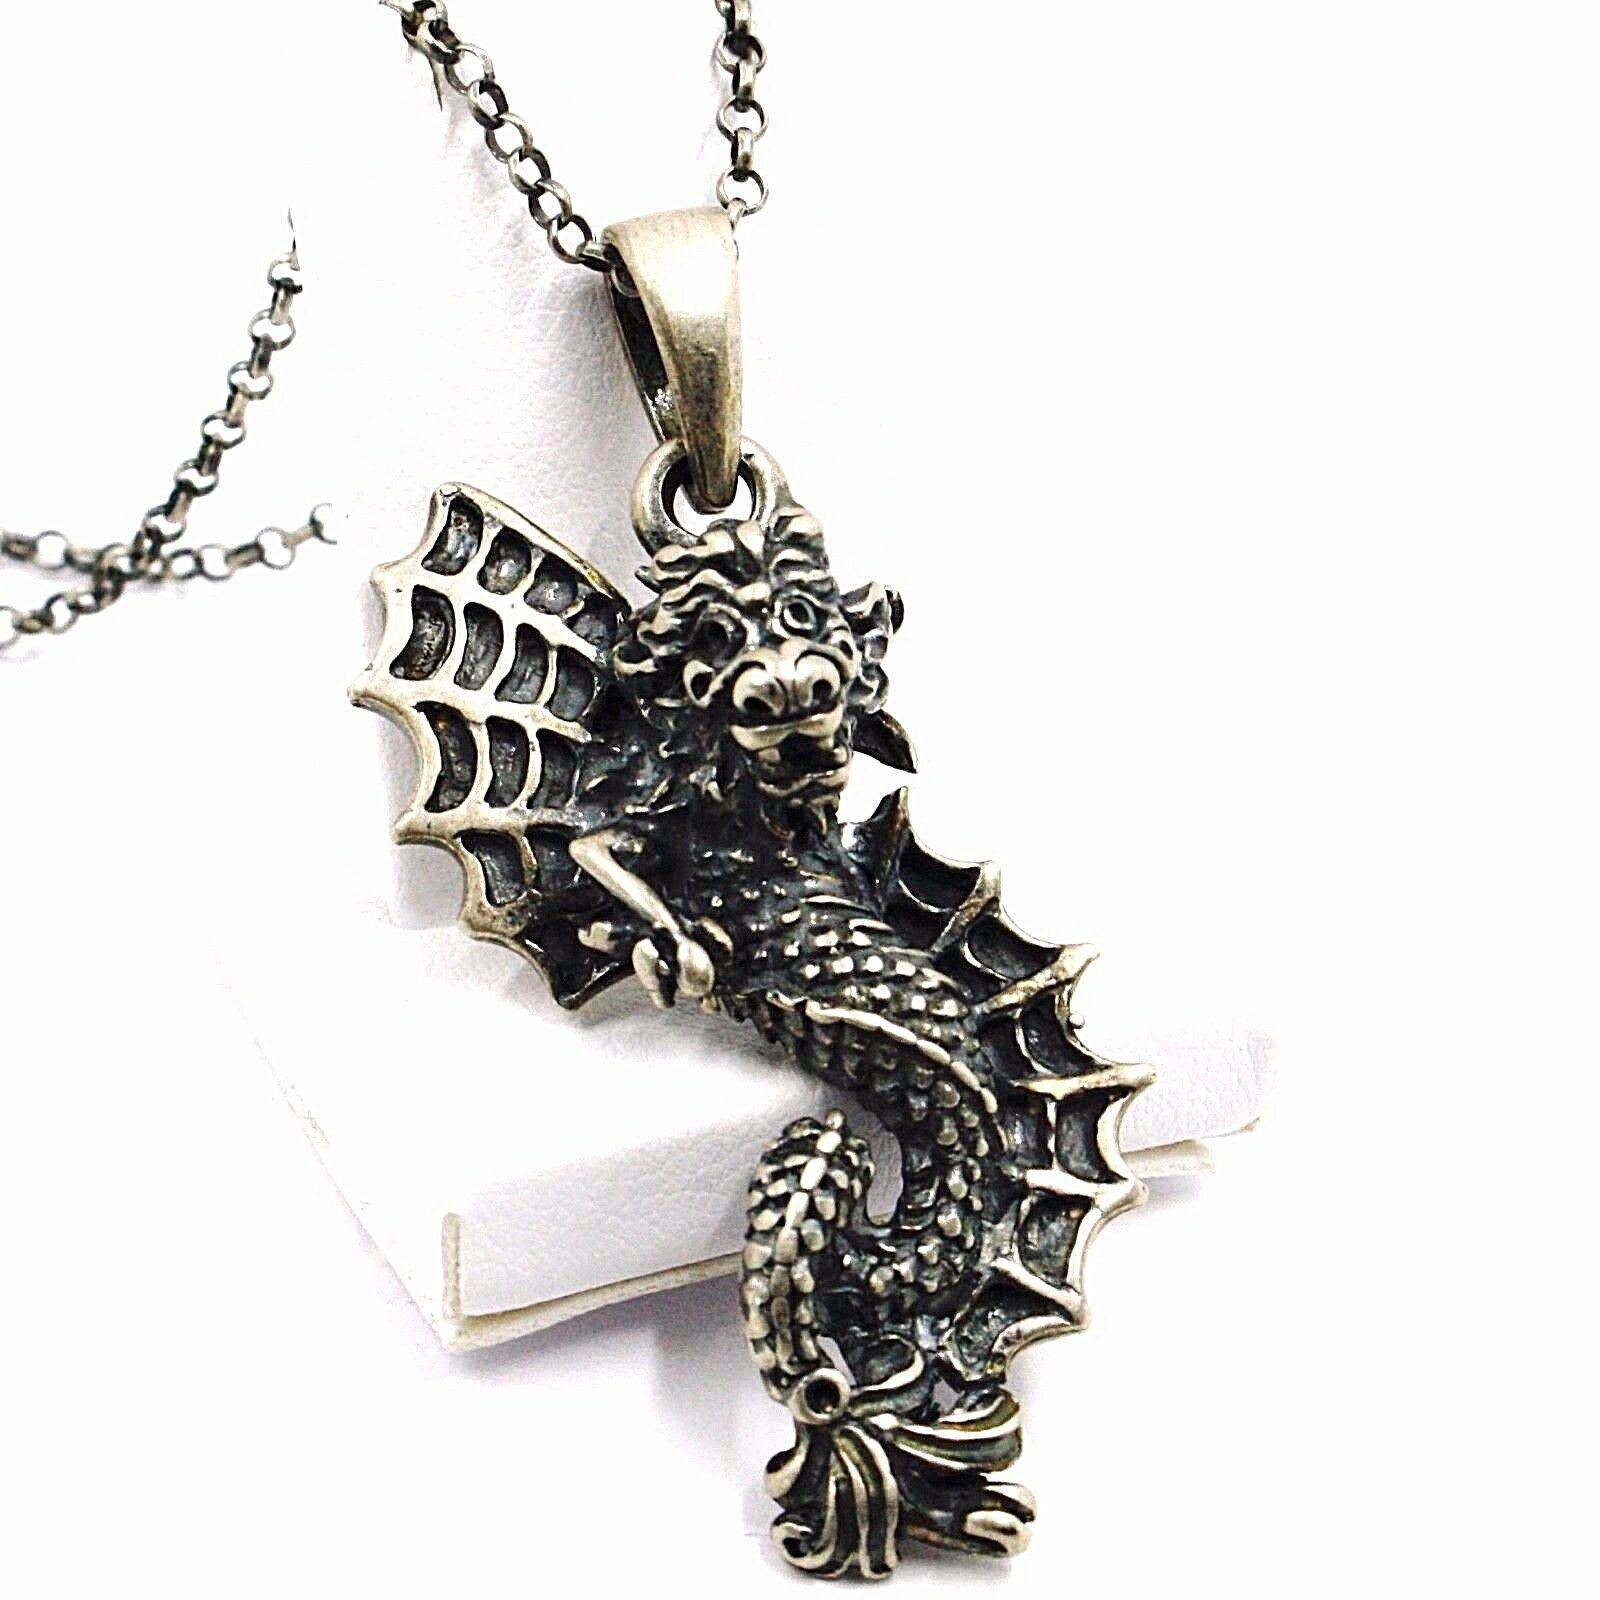 Necklace and Pendant, Silver 925, Burnished Satin, Dragon, Chain Rolo '